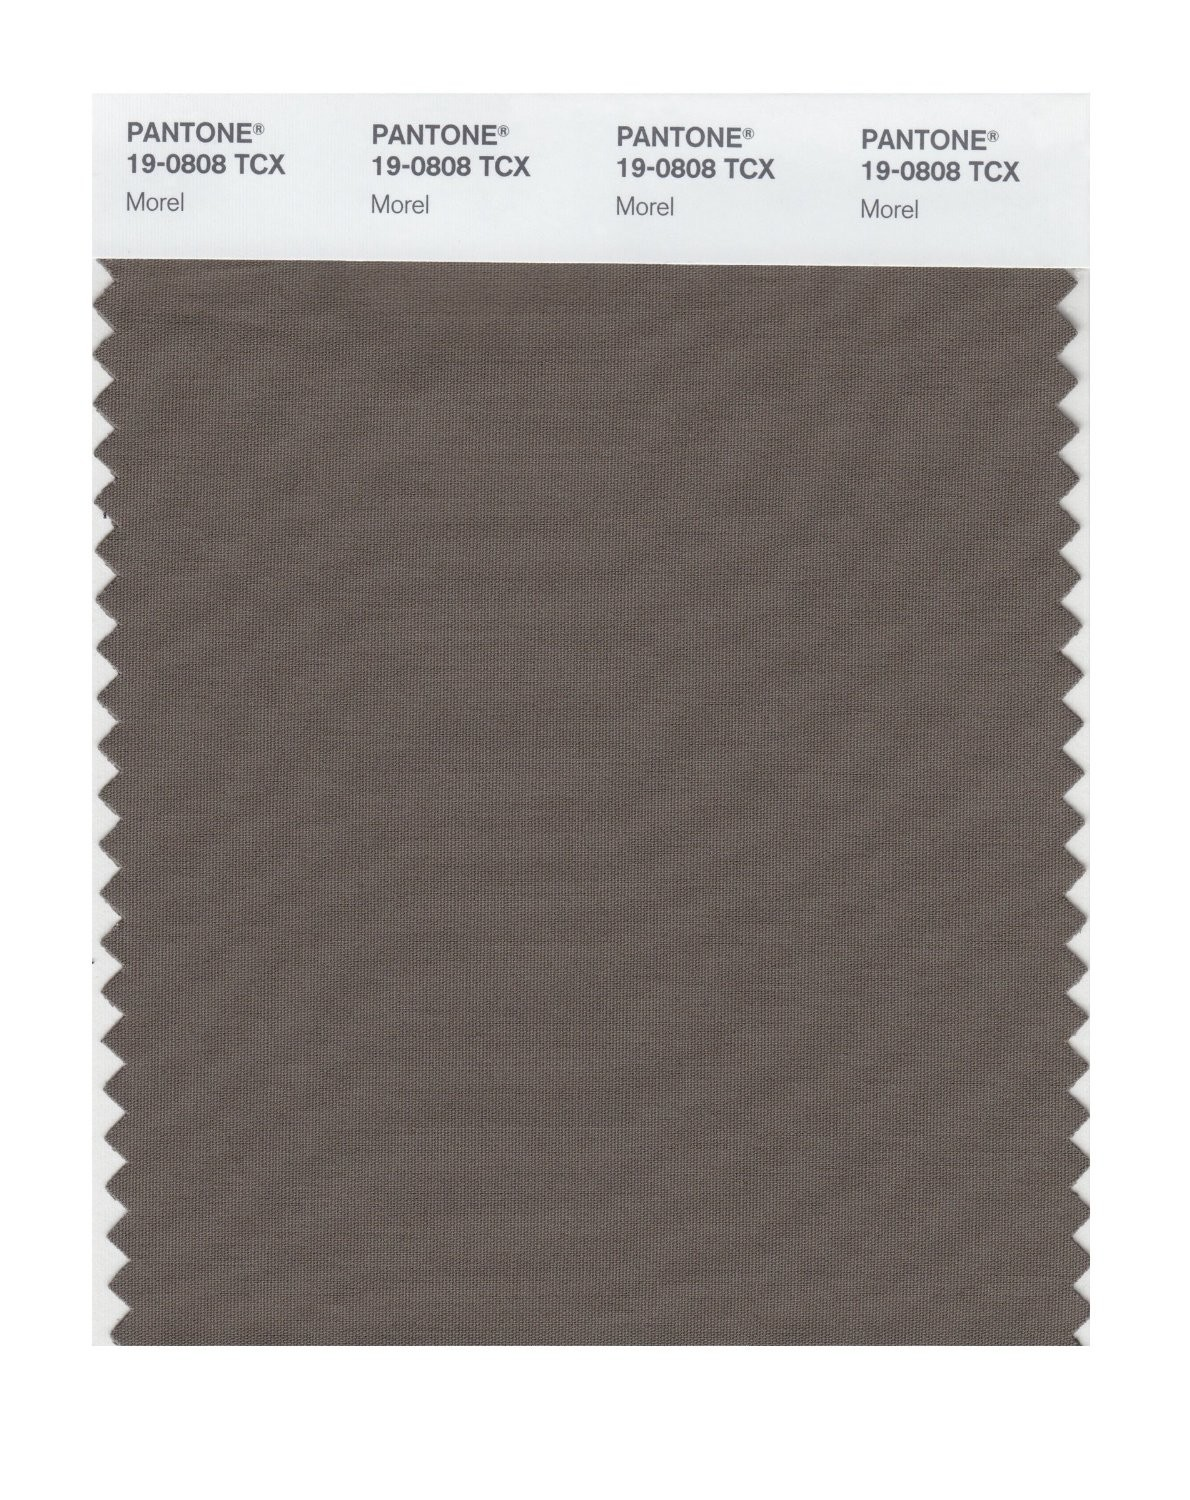 Pantone 19-0808 TCX Swatch Card Morel